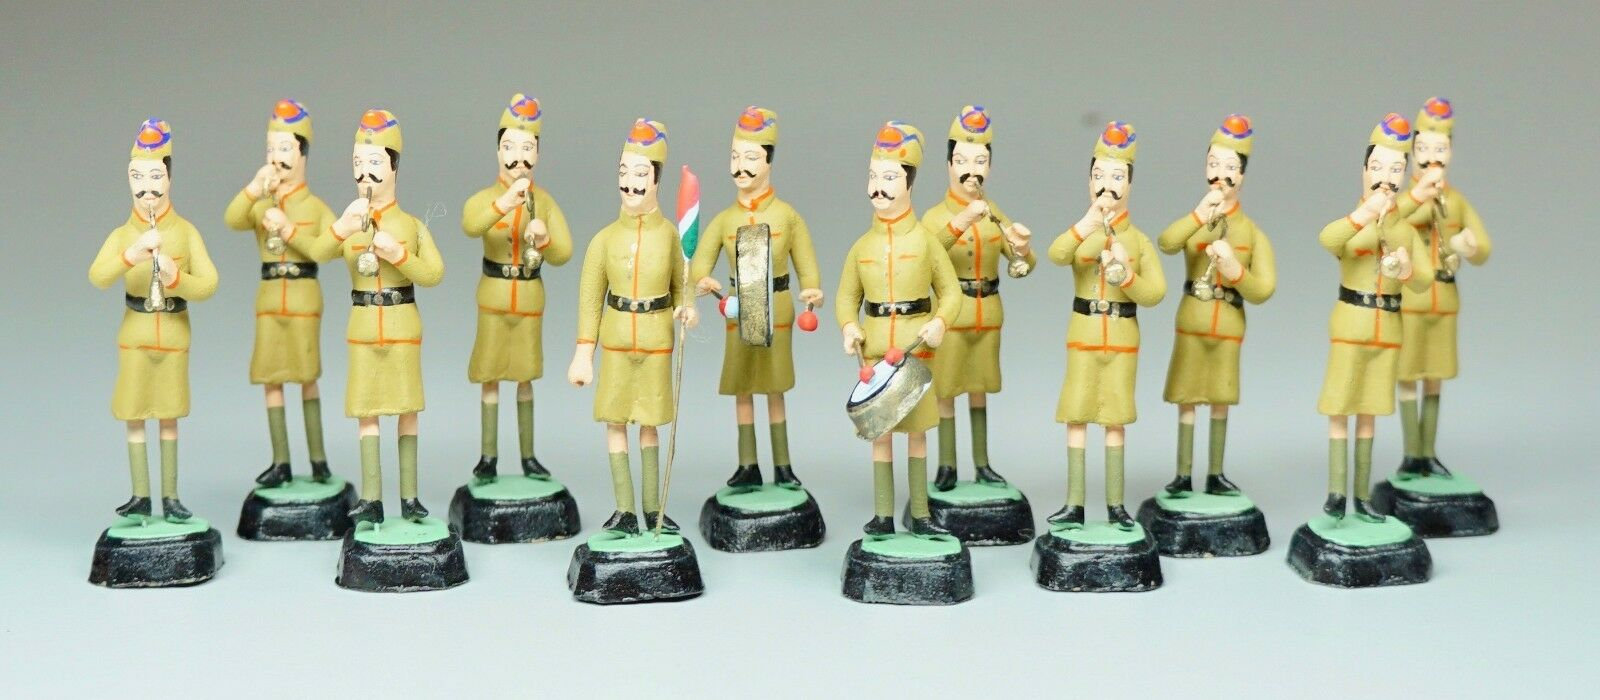 Vtg Hand Painted Ceramic Bugle Corps Toy Soldiers Drummers 2 1 8  H 12 Soldiers